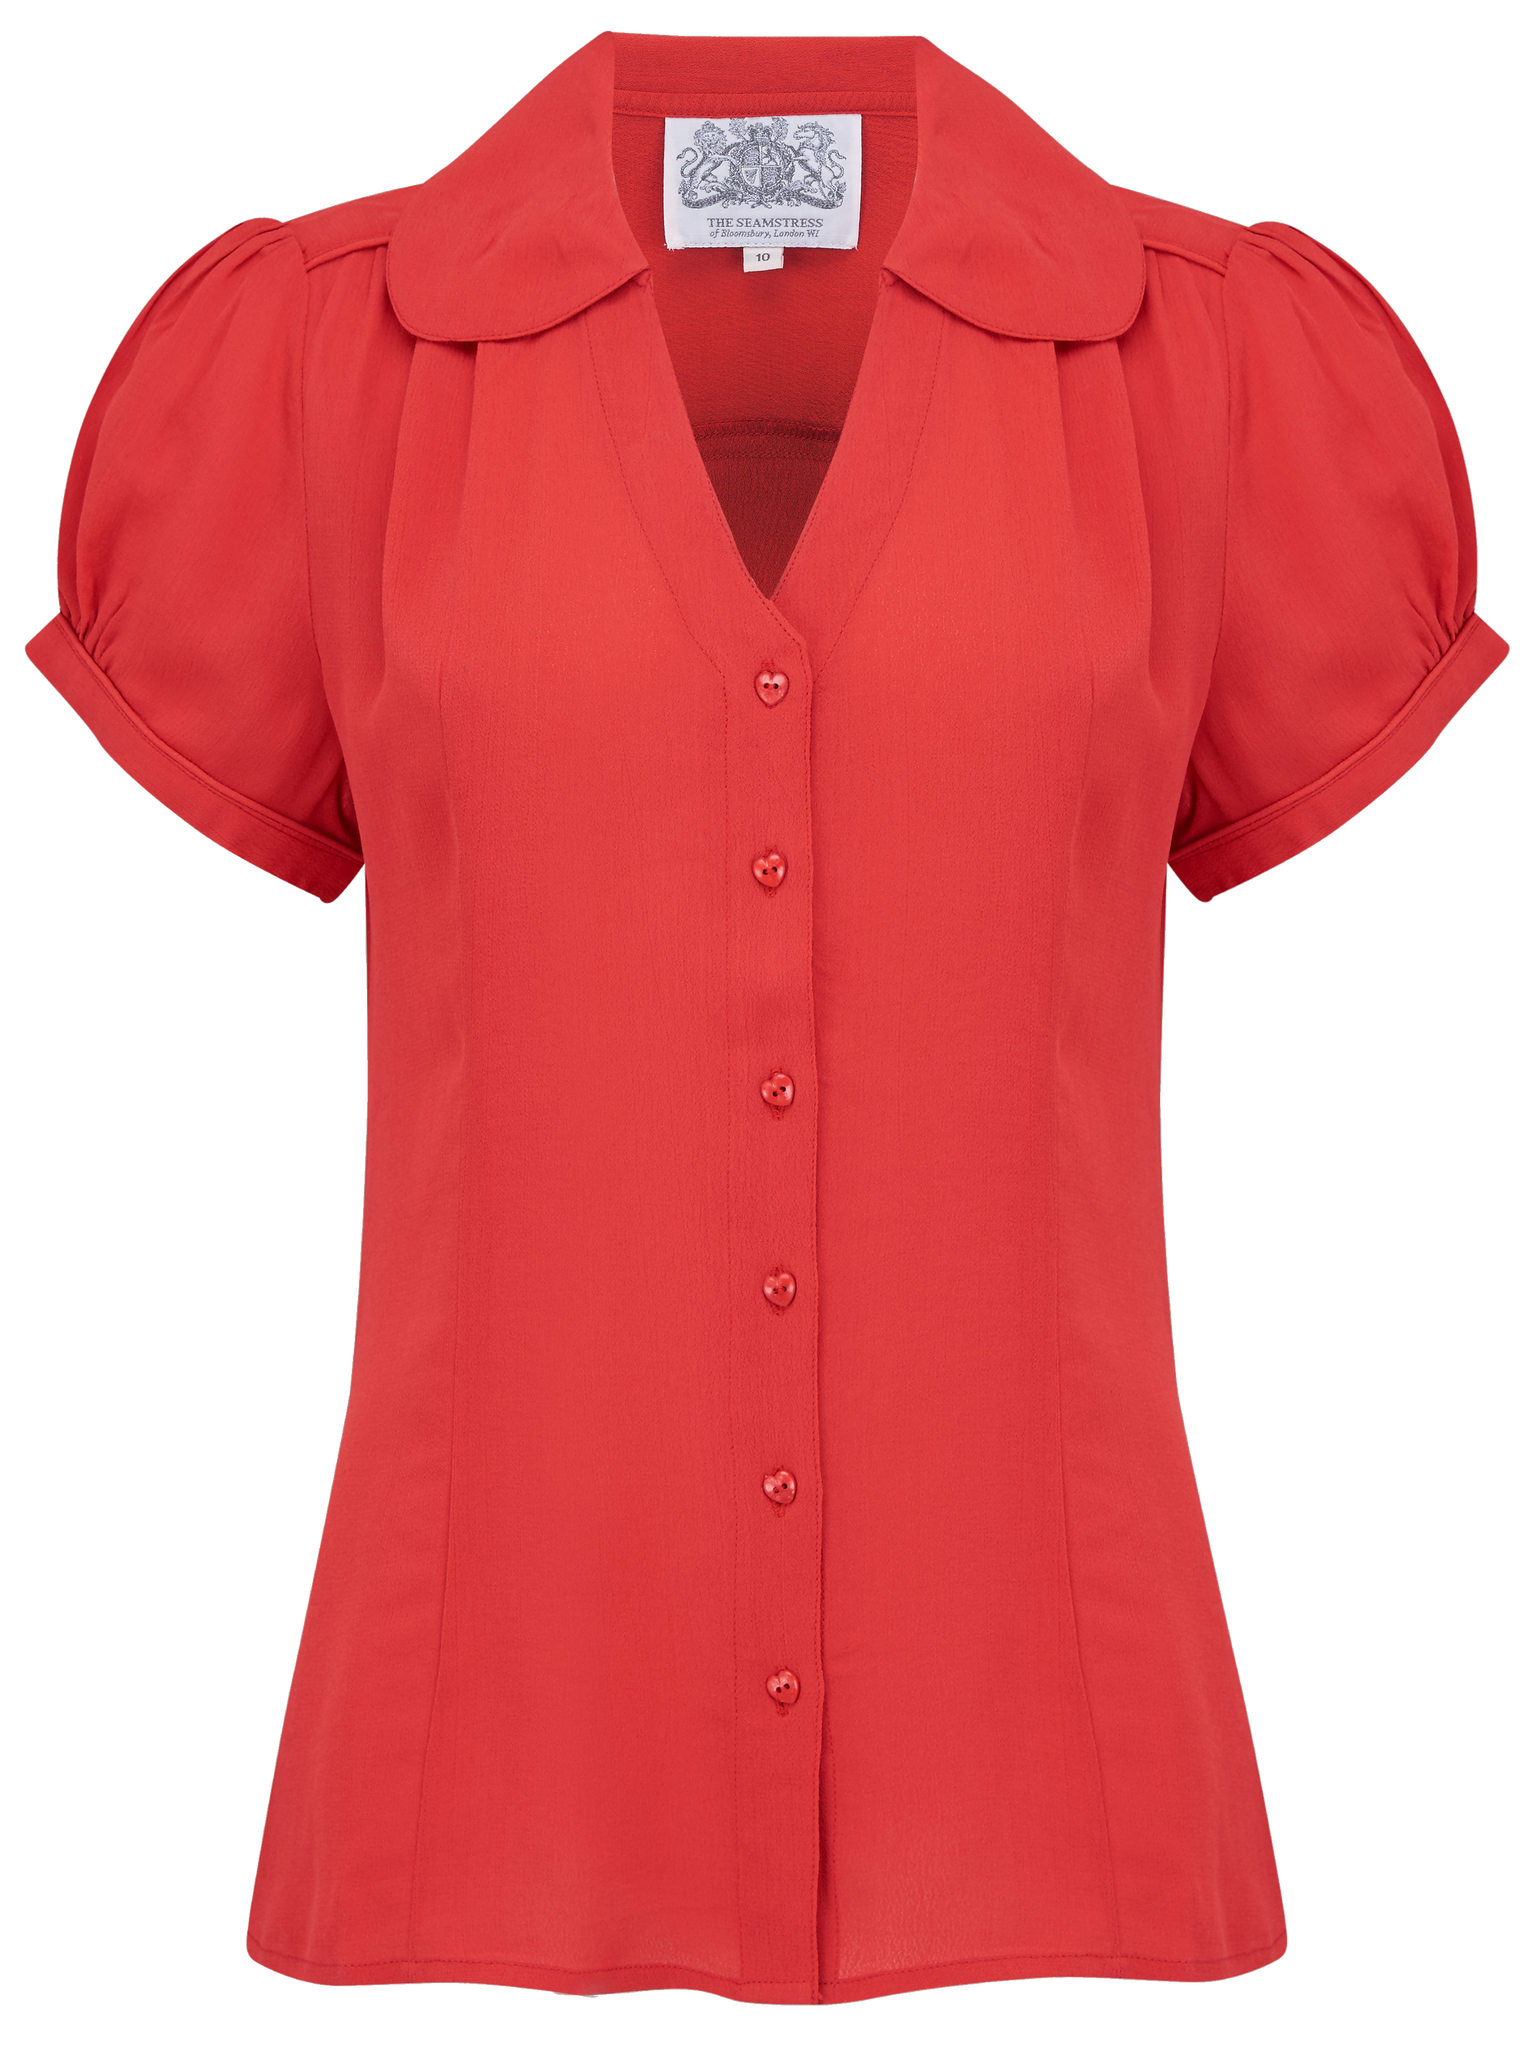 "The Seamstress Of Bloomsbury ""Judy"" Blouse in Red, Classic & Authentic 1940s Vintage Inspired Style - RocknRomance Clothing"